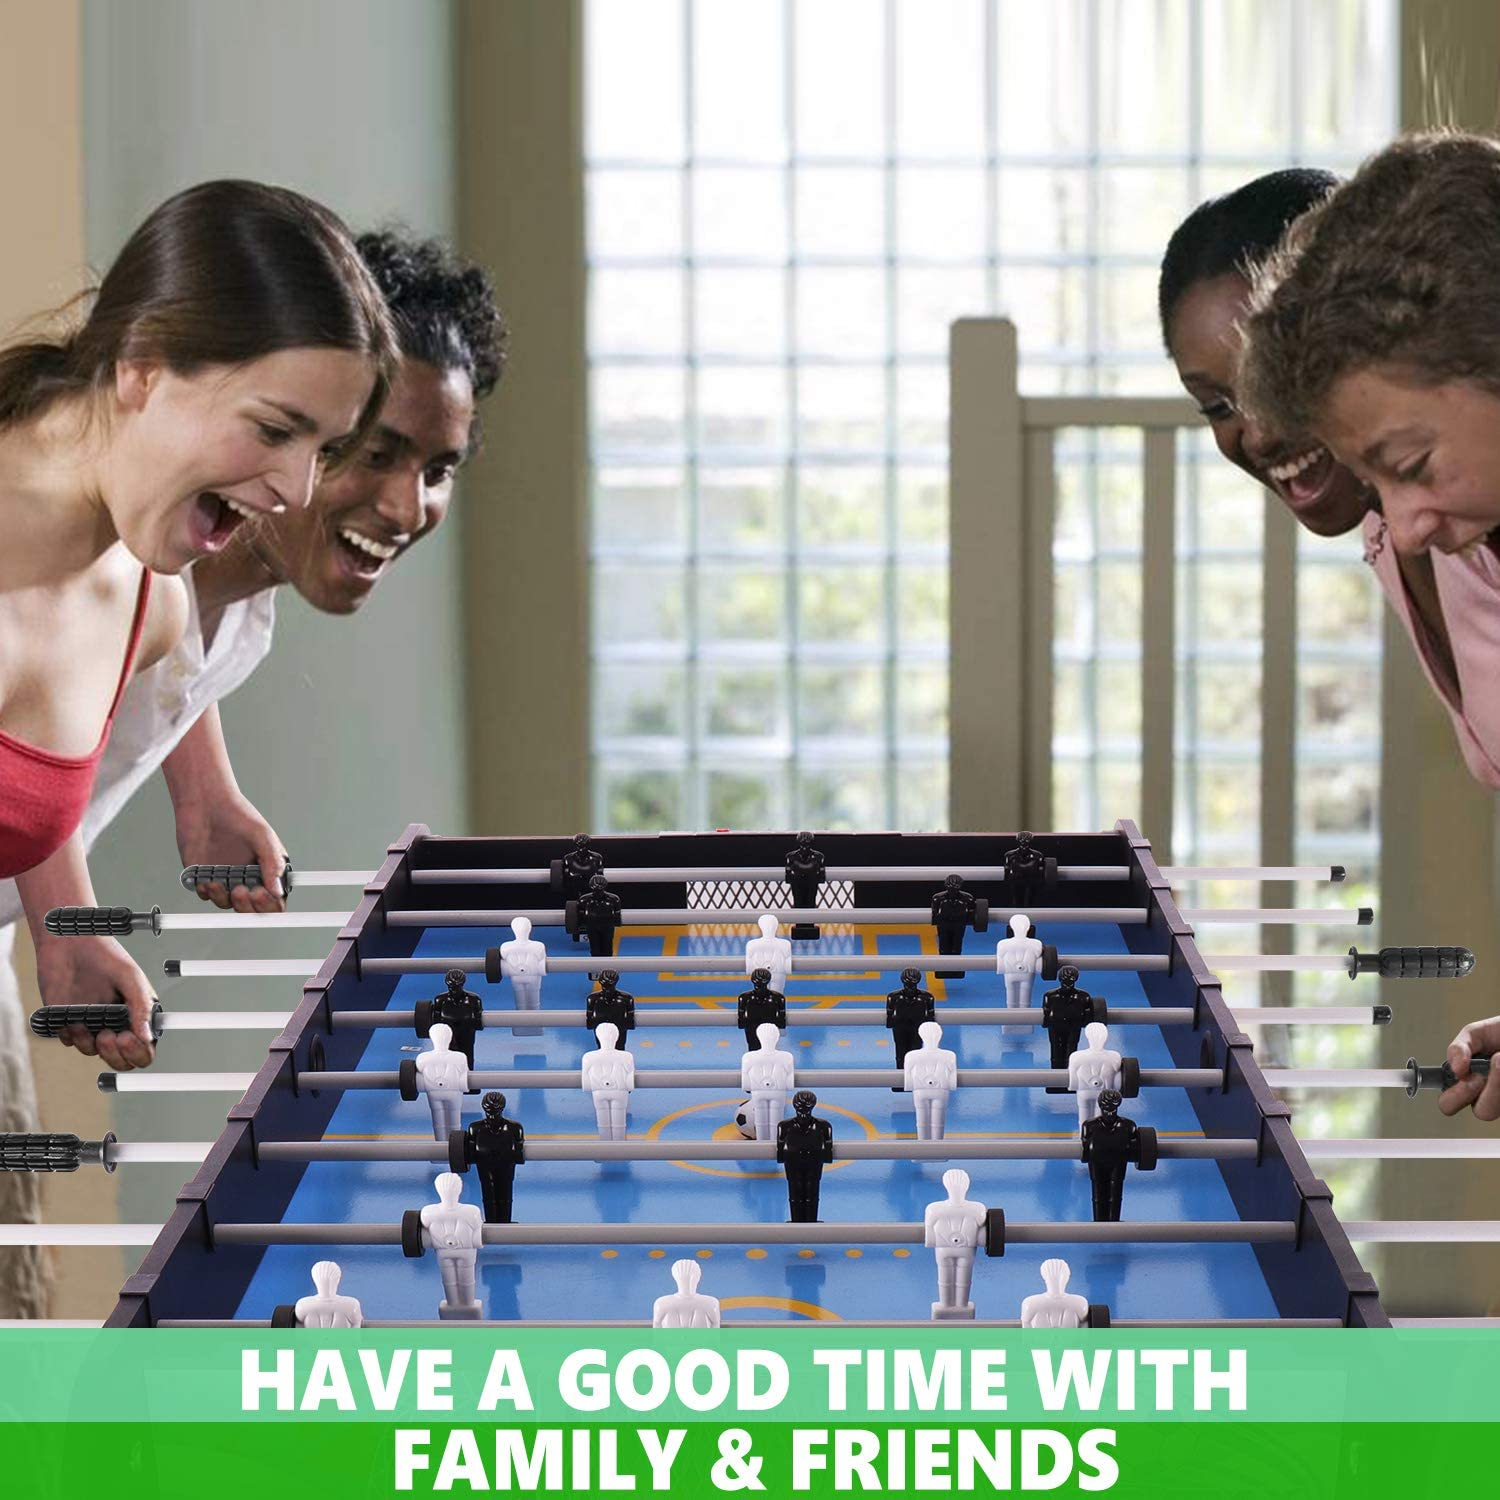 Easy to Store 4 Foldable Compact Soccer//Football Game Table Assembly Free WIN.MAX Preassembled Folding Foosball Table